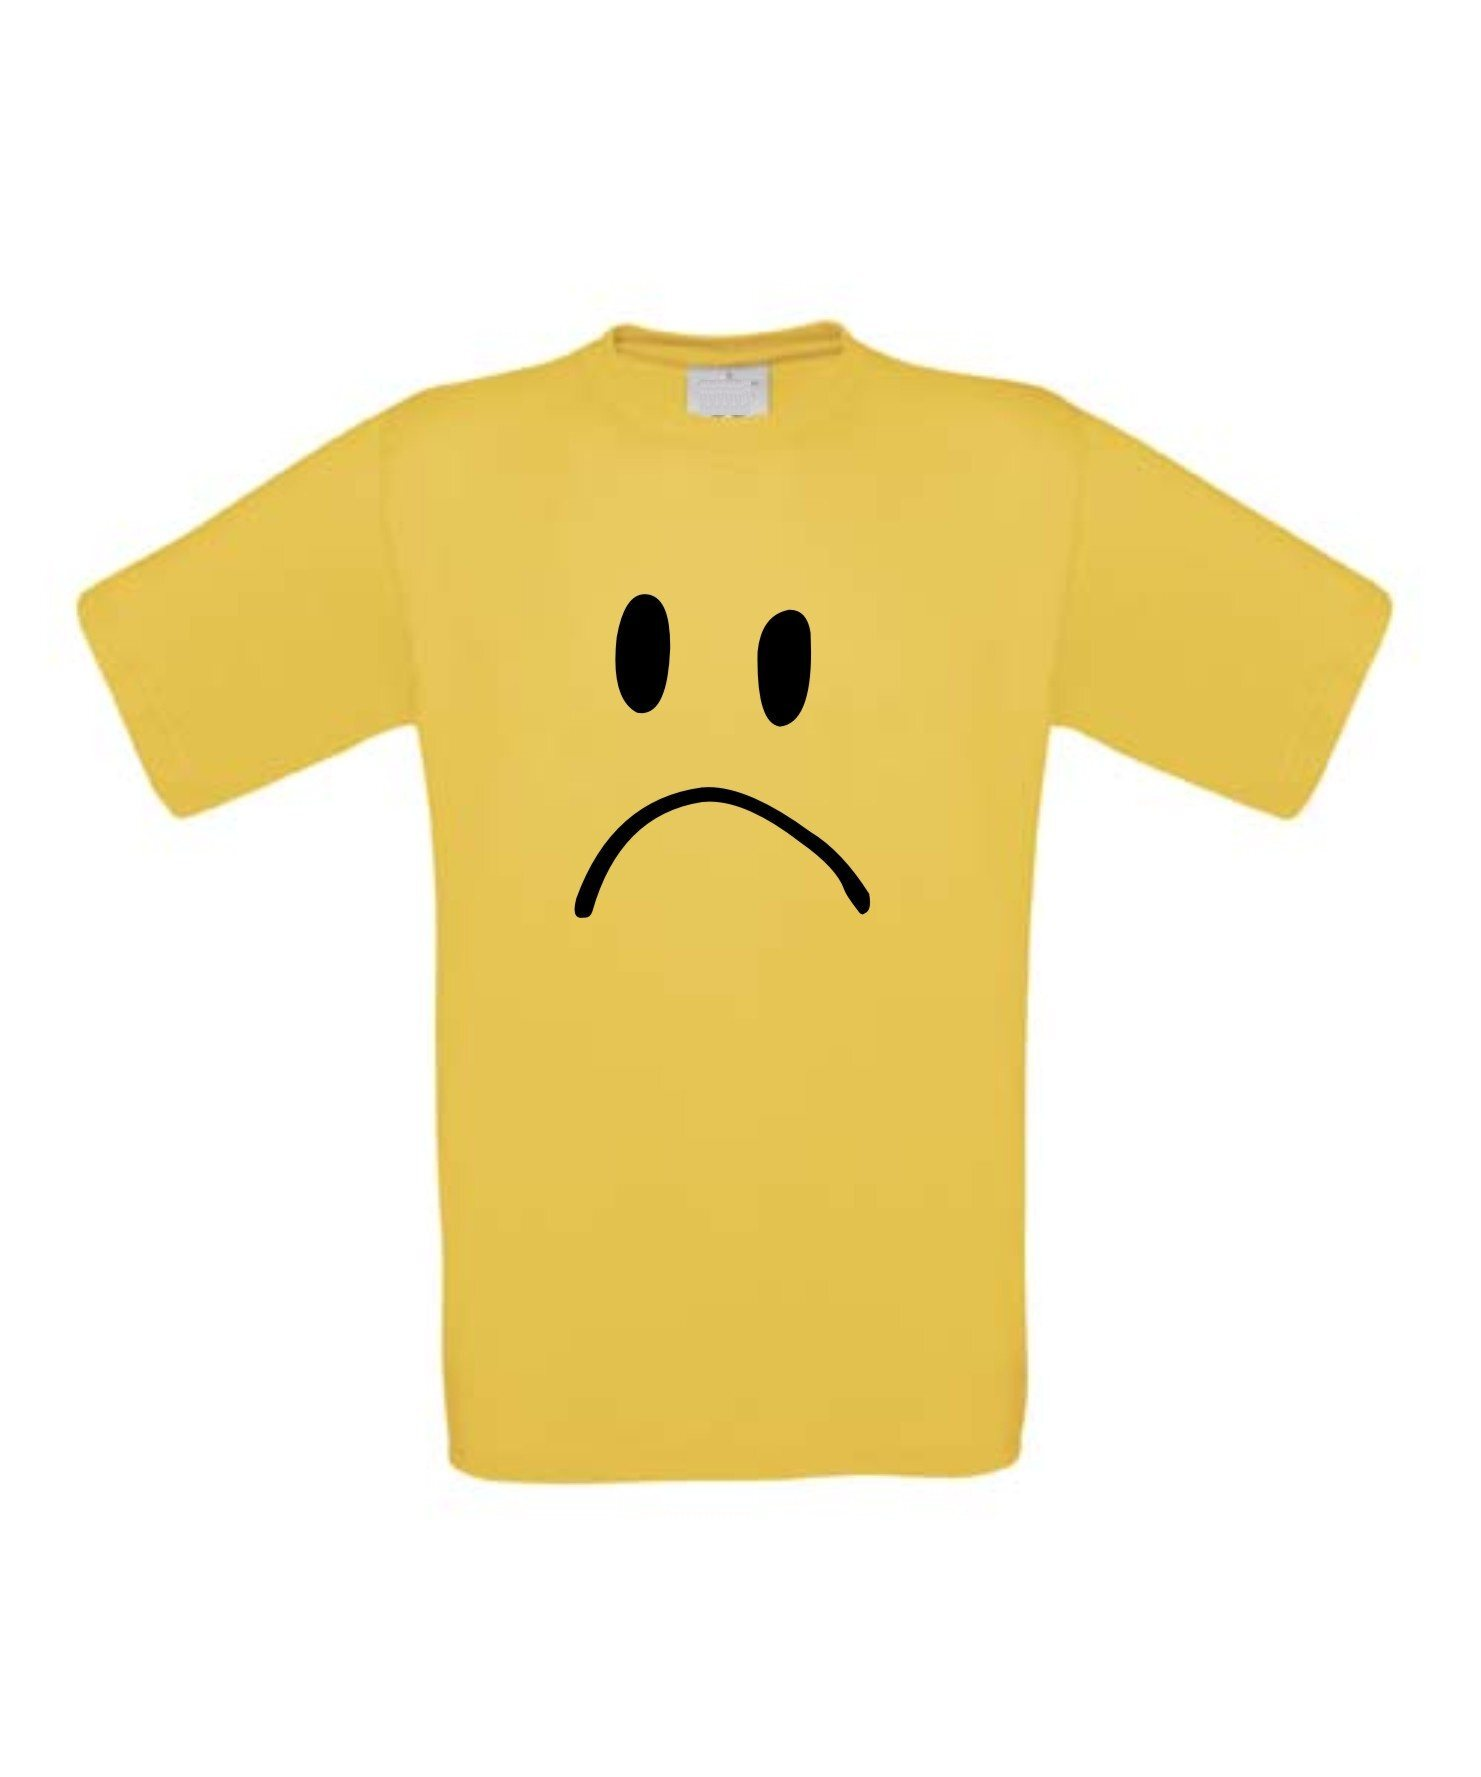 geen smile t-shirt